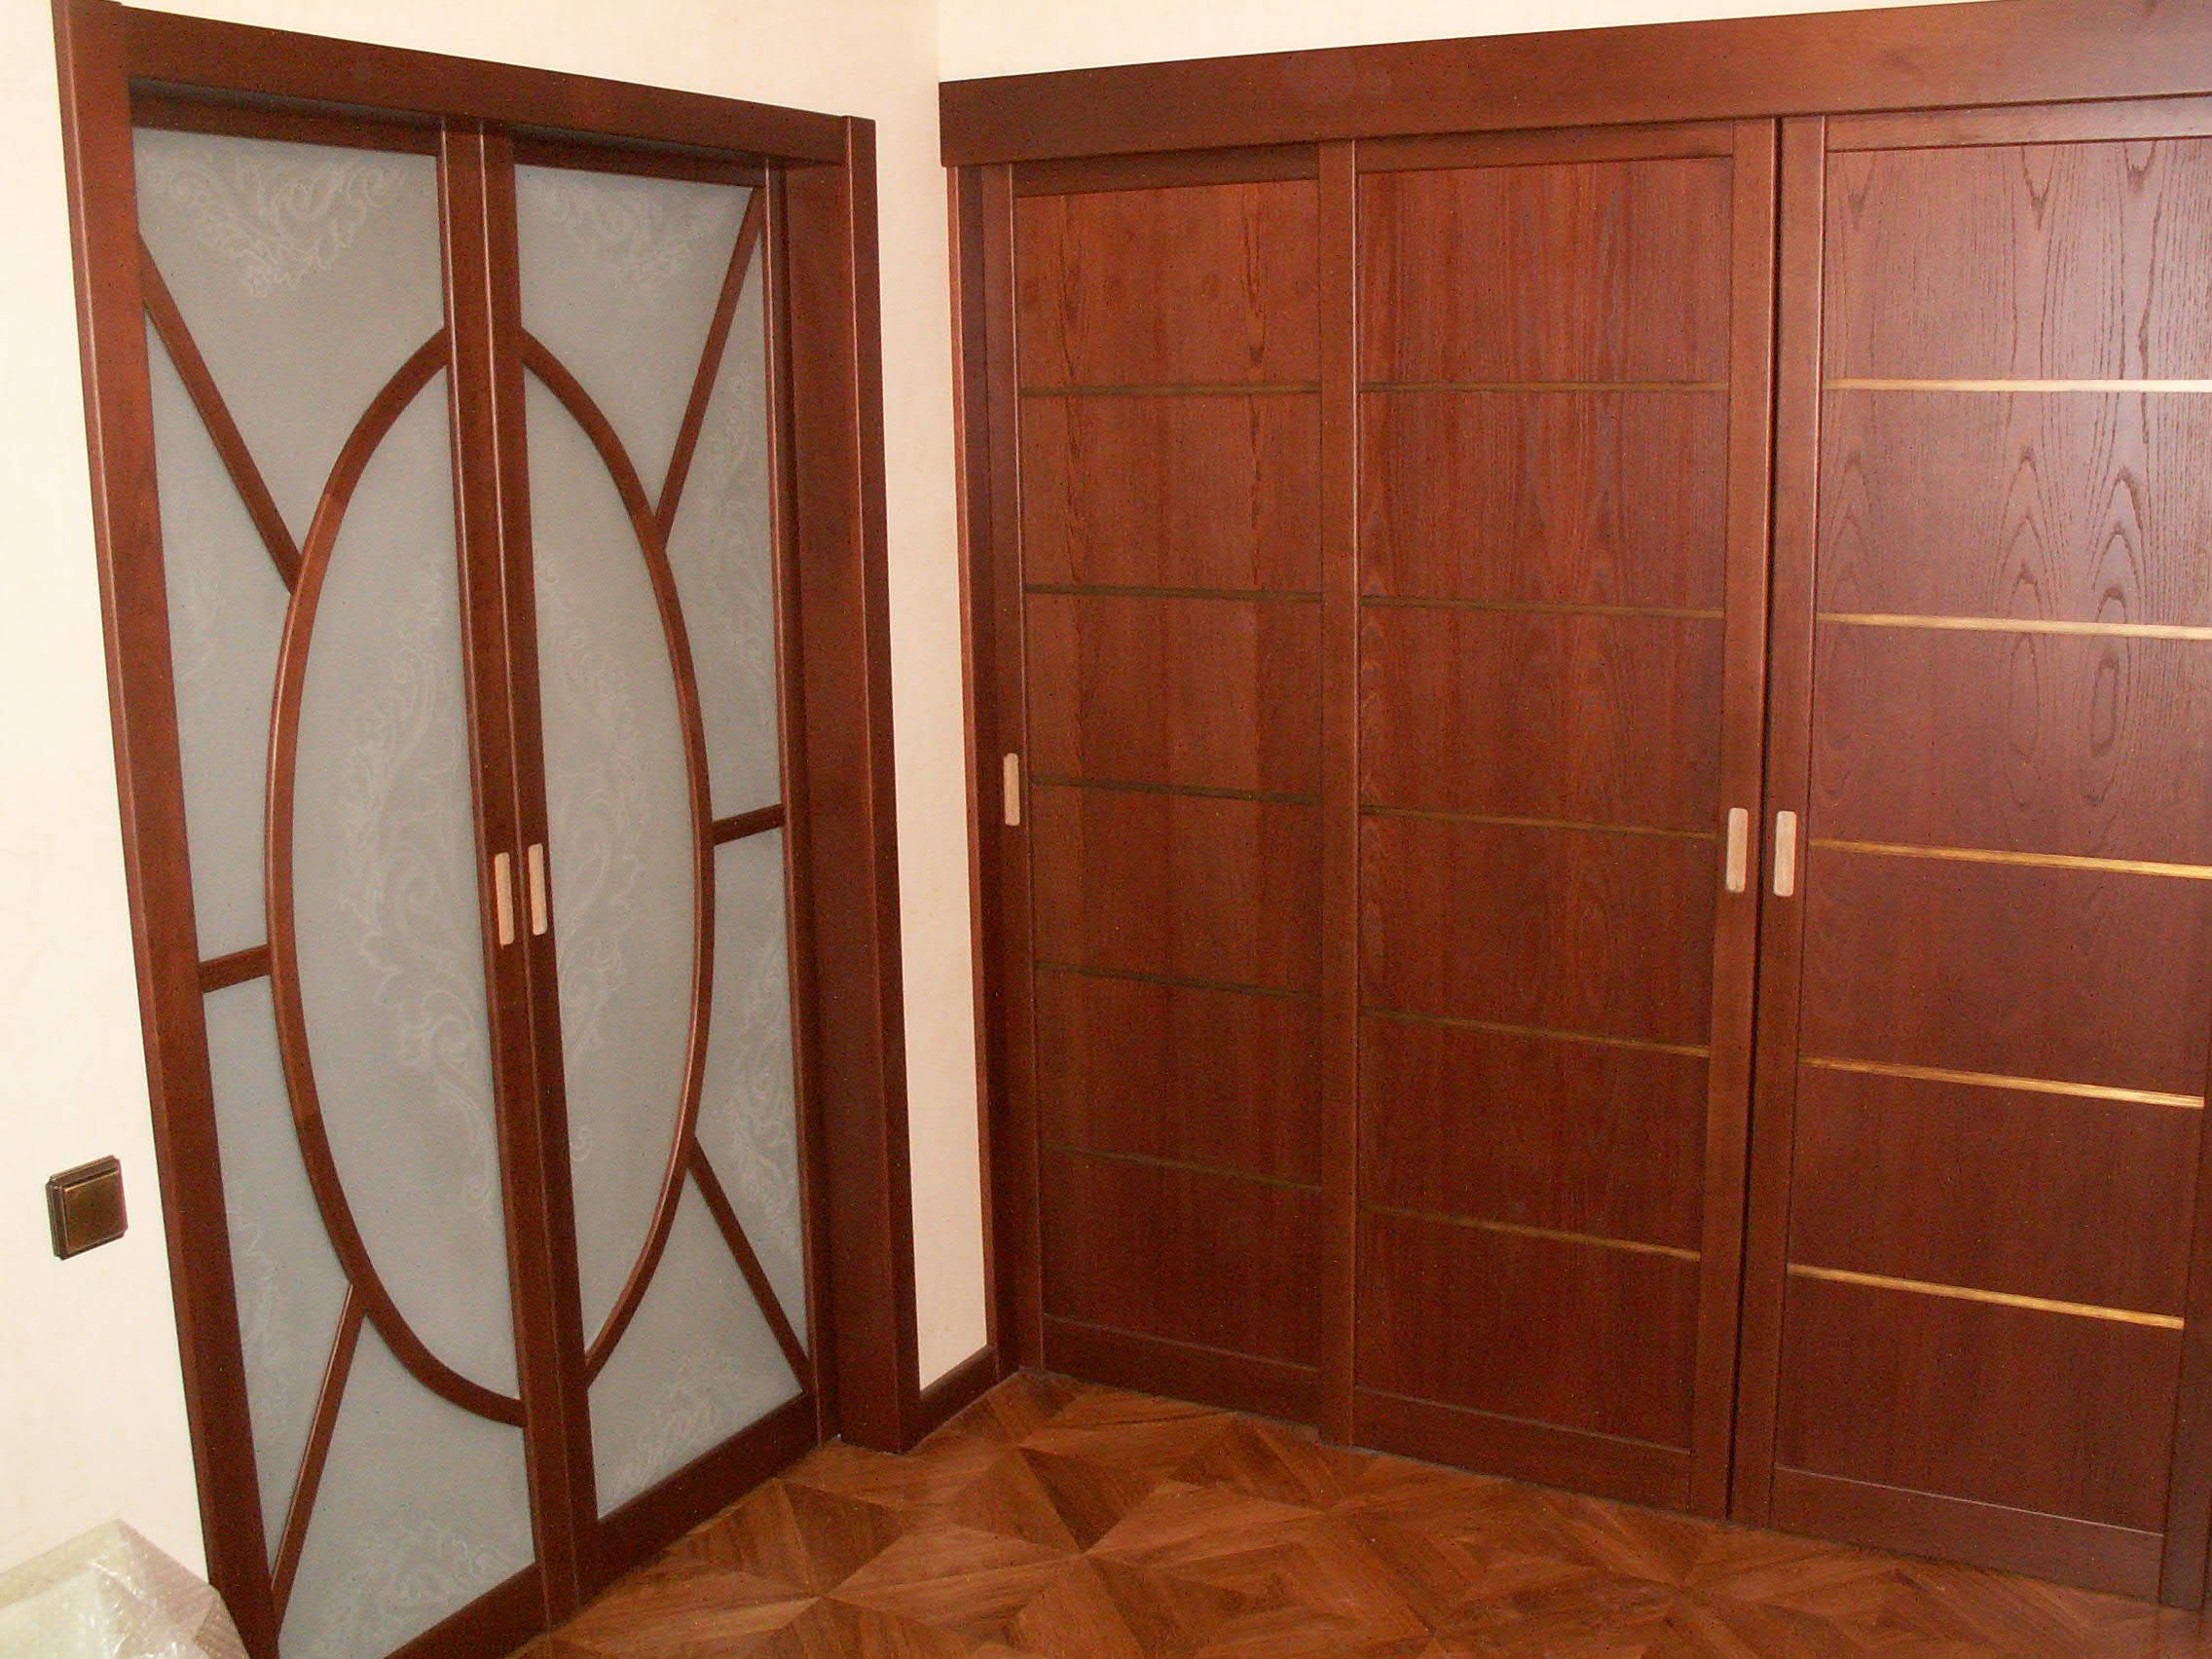 Sliding laminated doors in the apartment